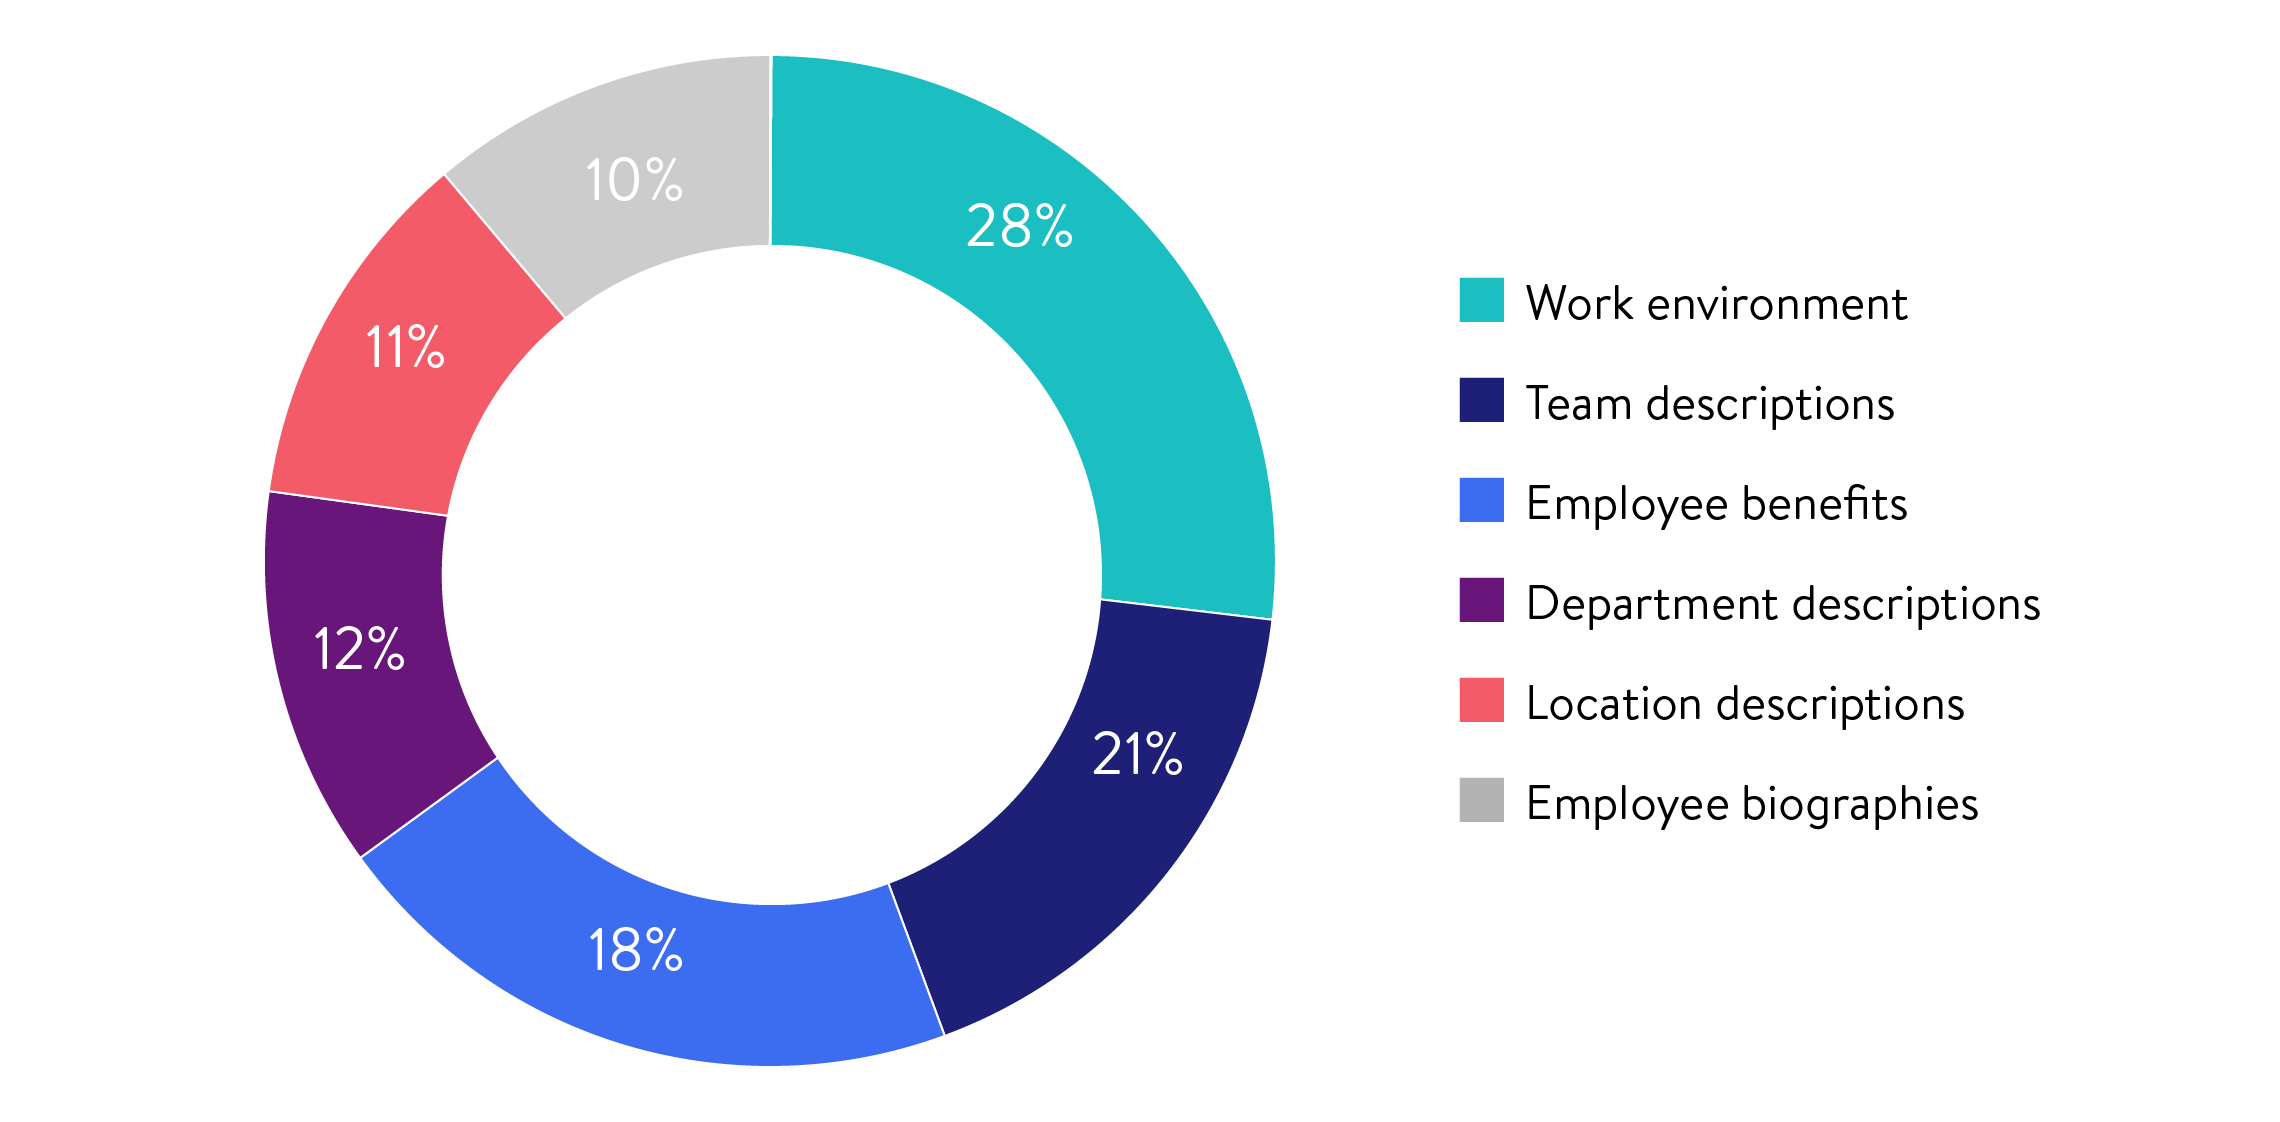 Donut graph showing the following entries: Work environment 28%, team descriptions 21%, employee benefits 18%, department descriptions 12%, location descriptions 11% and employee biographies 10%.